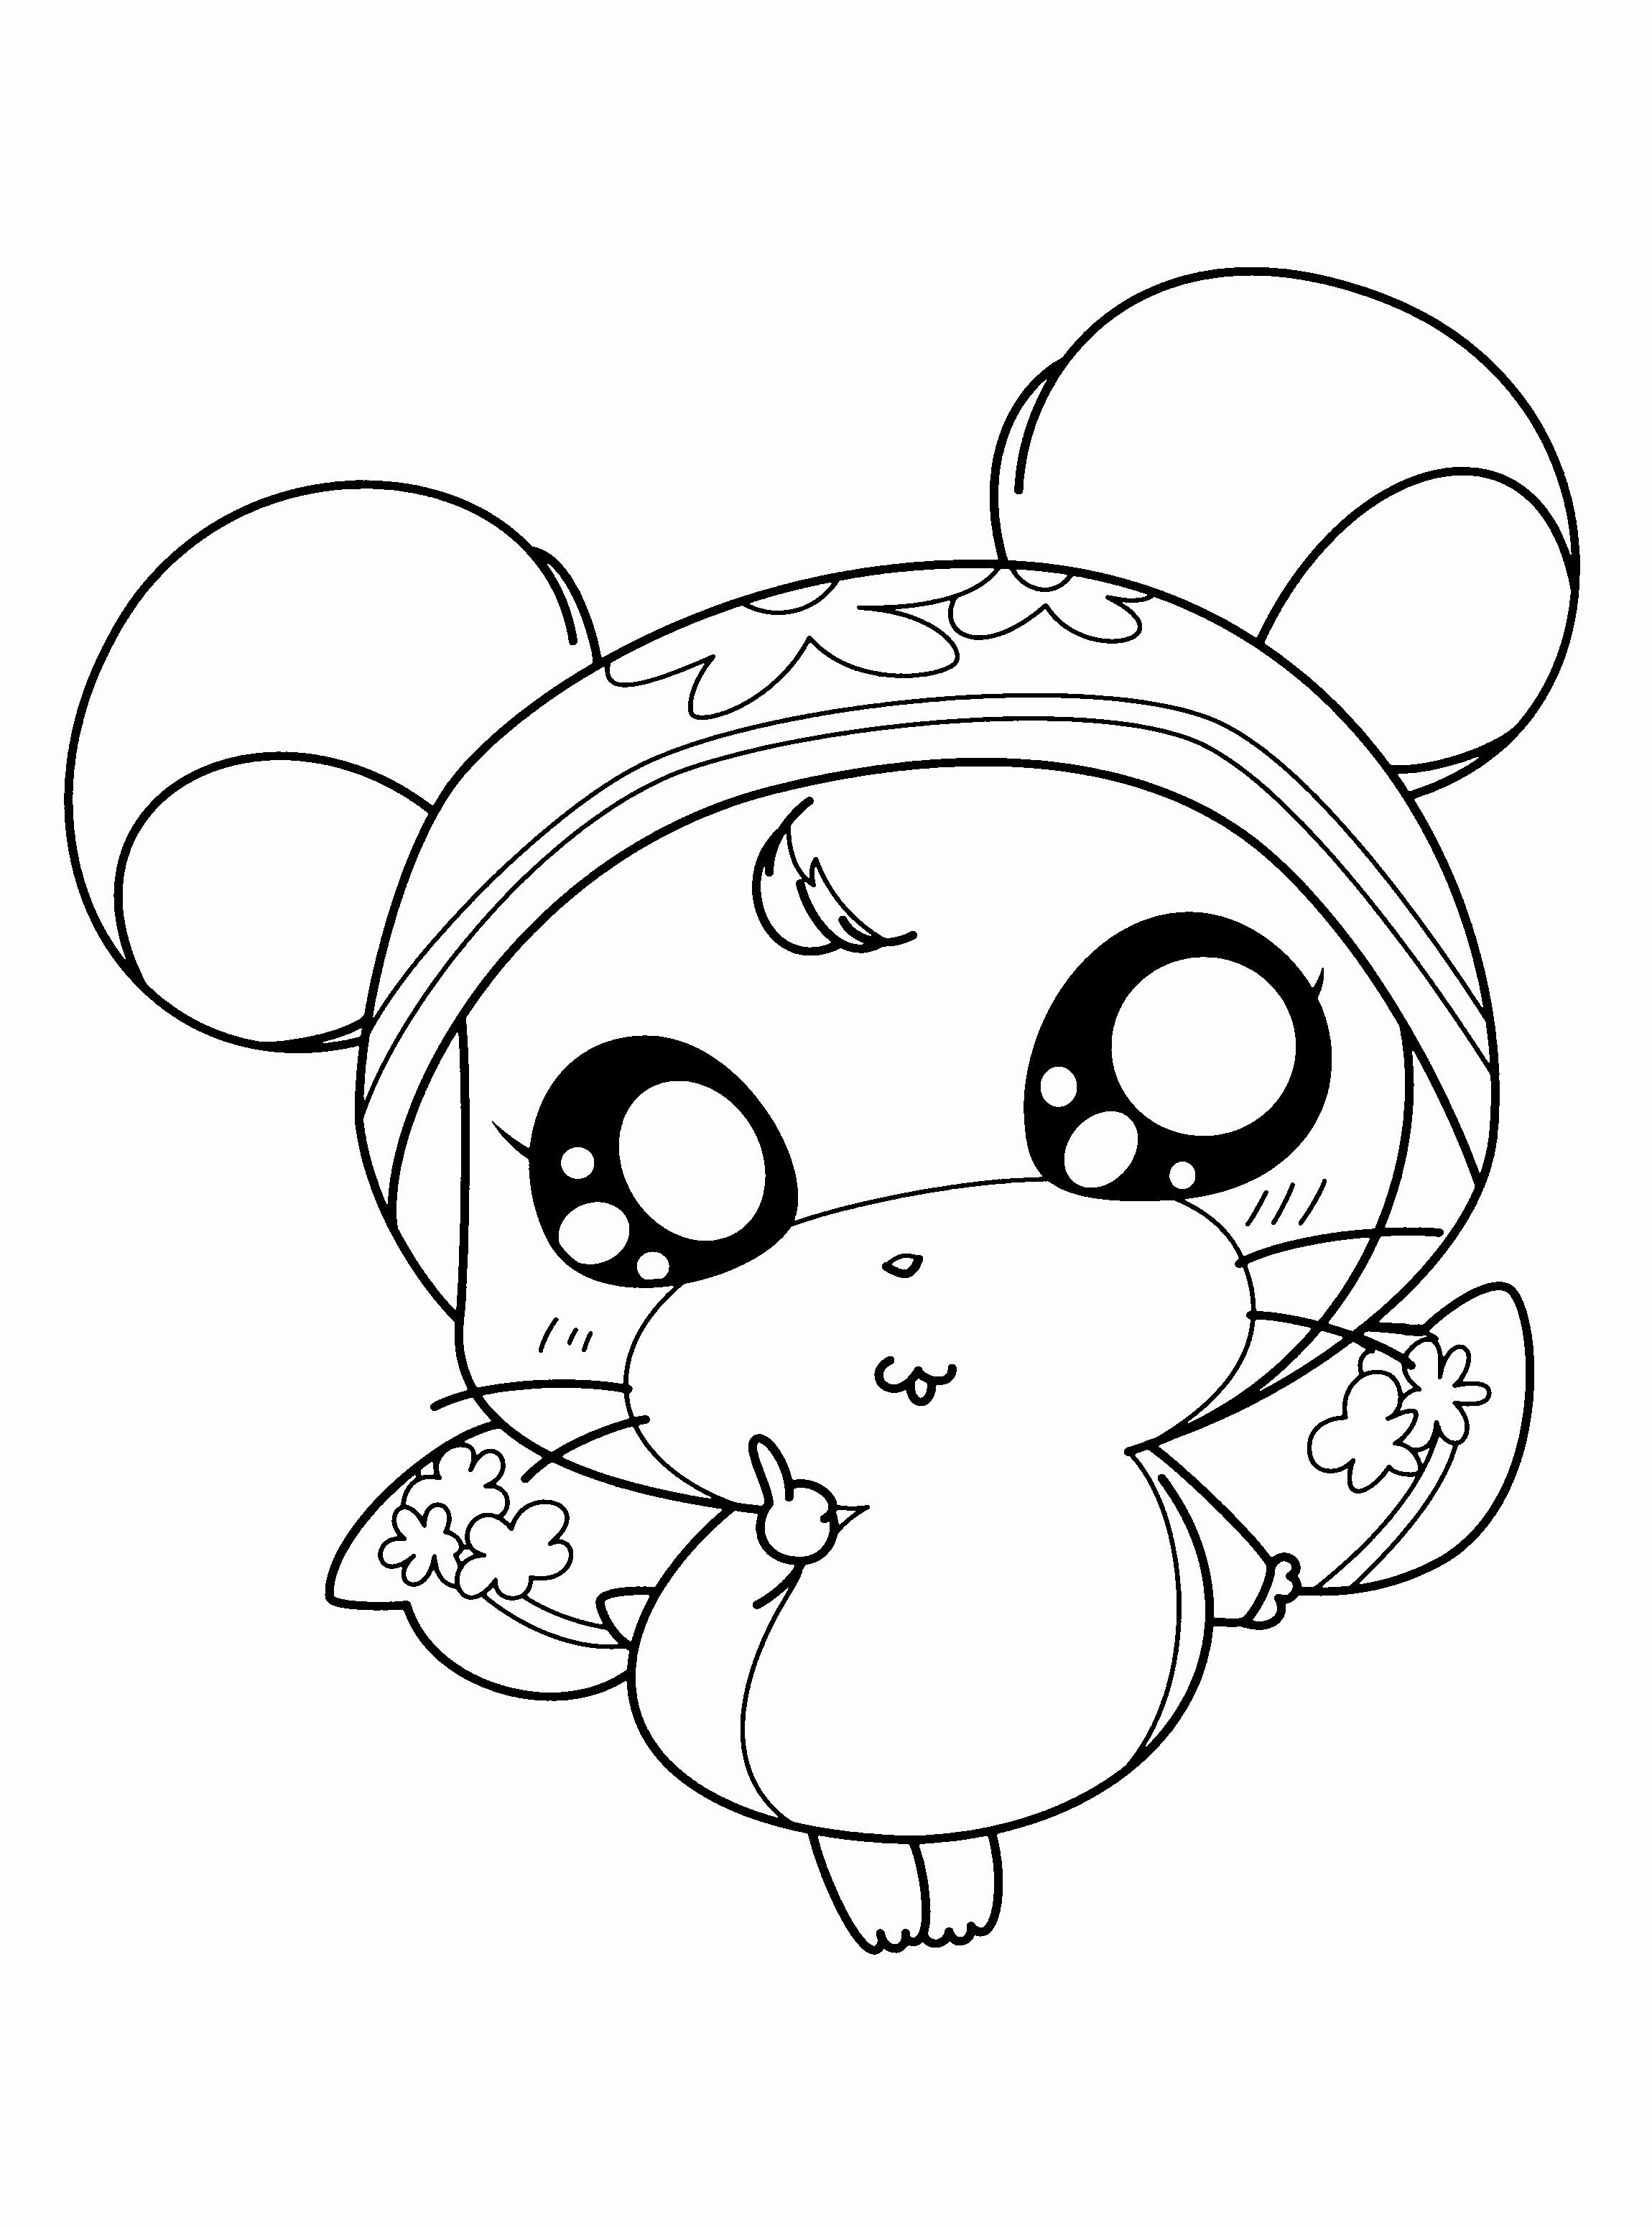 Printable Coloring Pages Of Animals Wallpaper